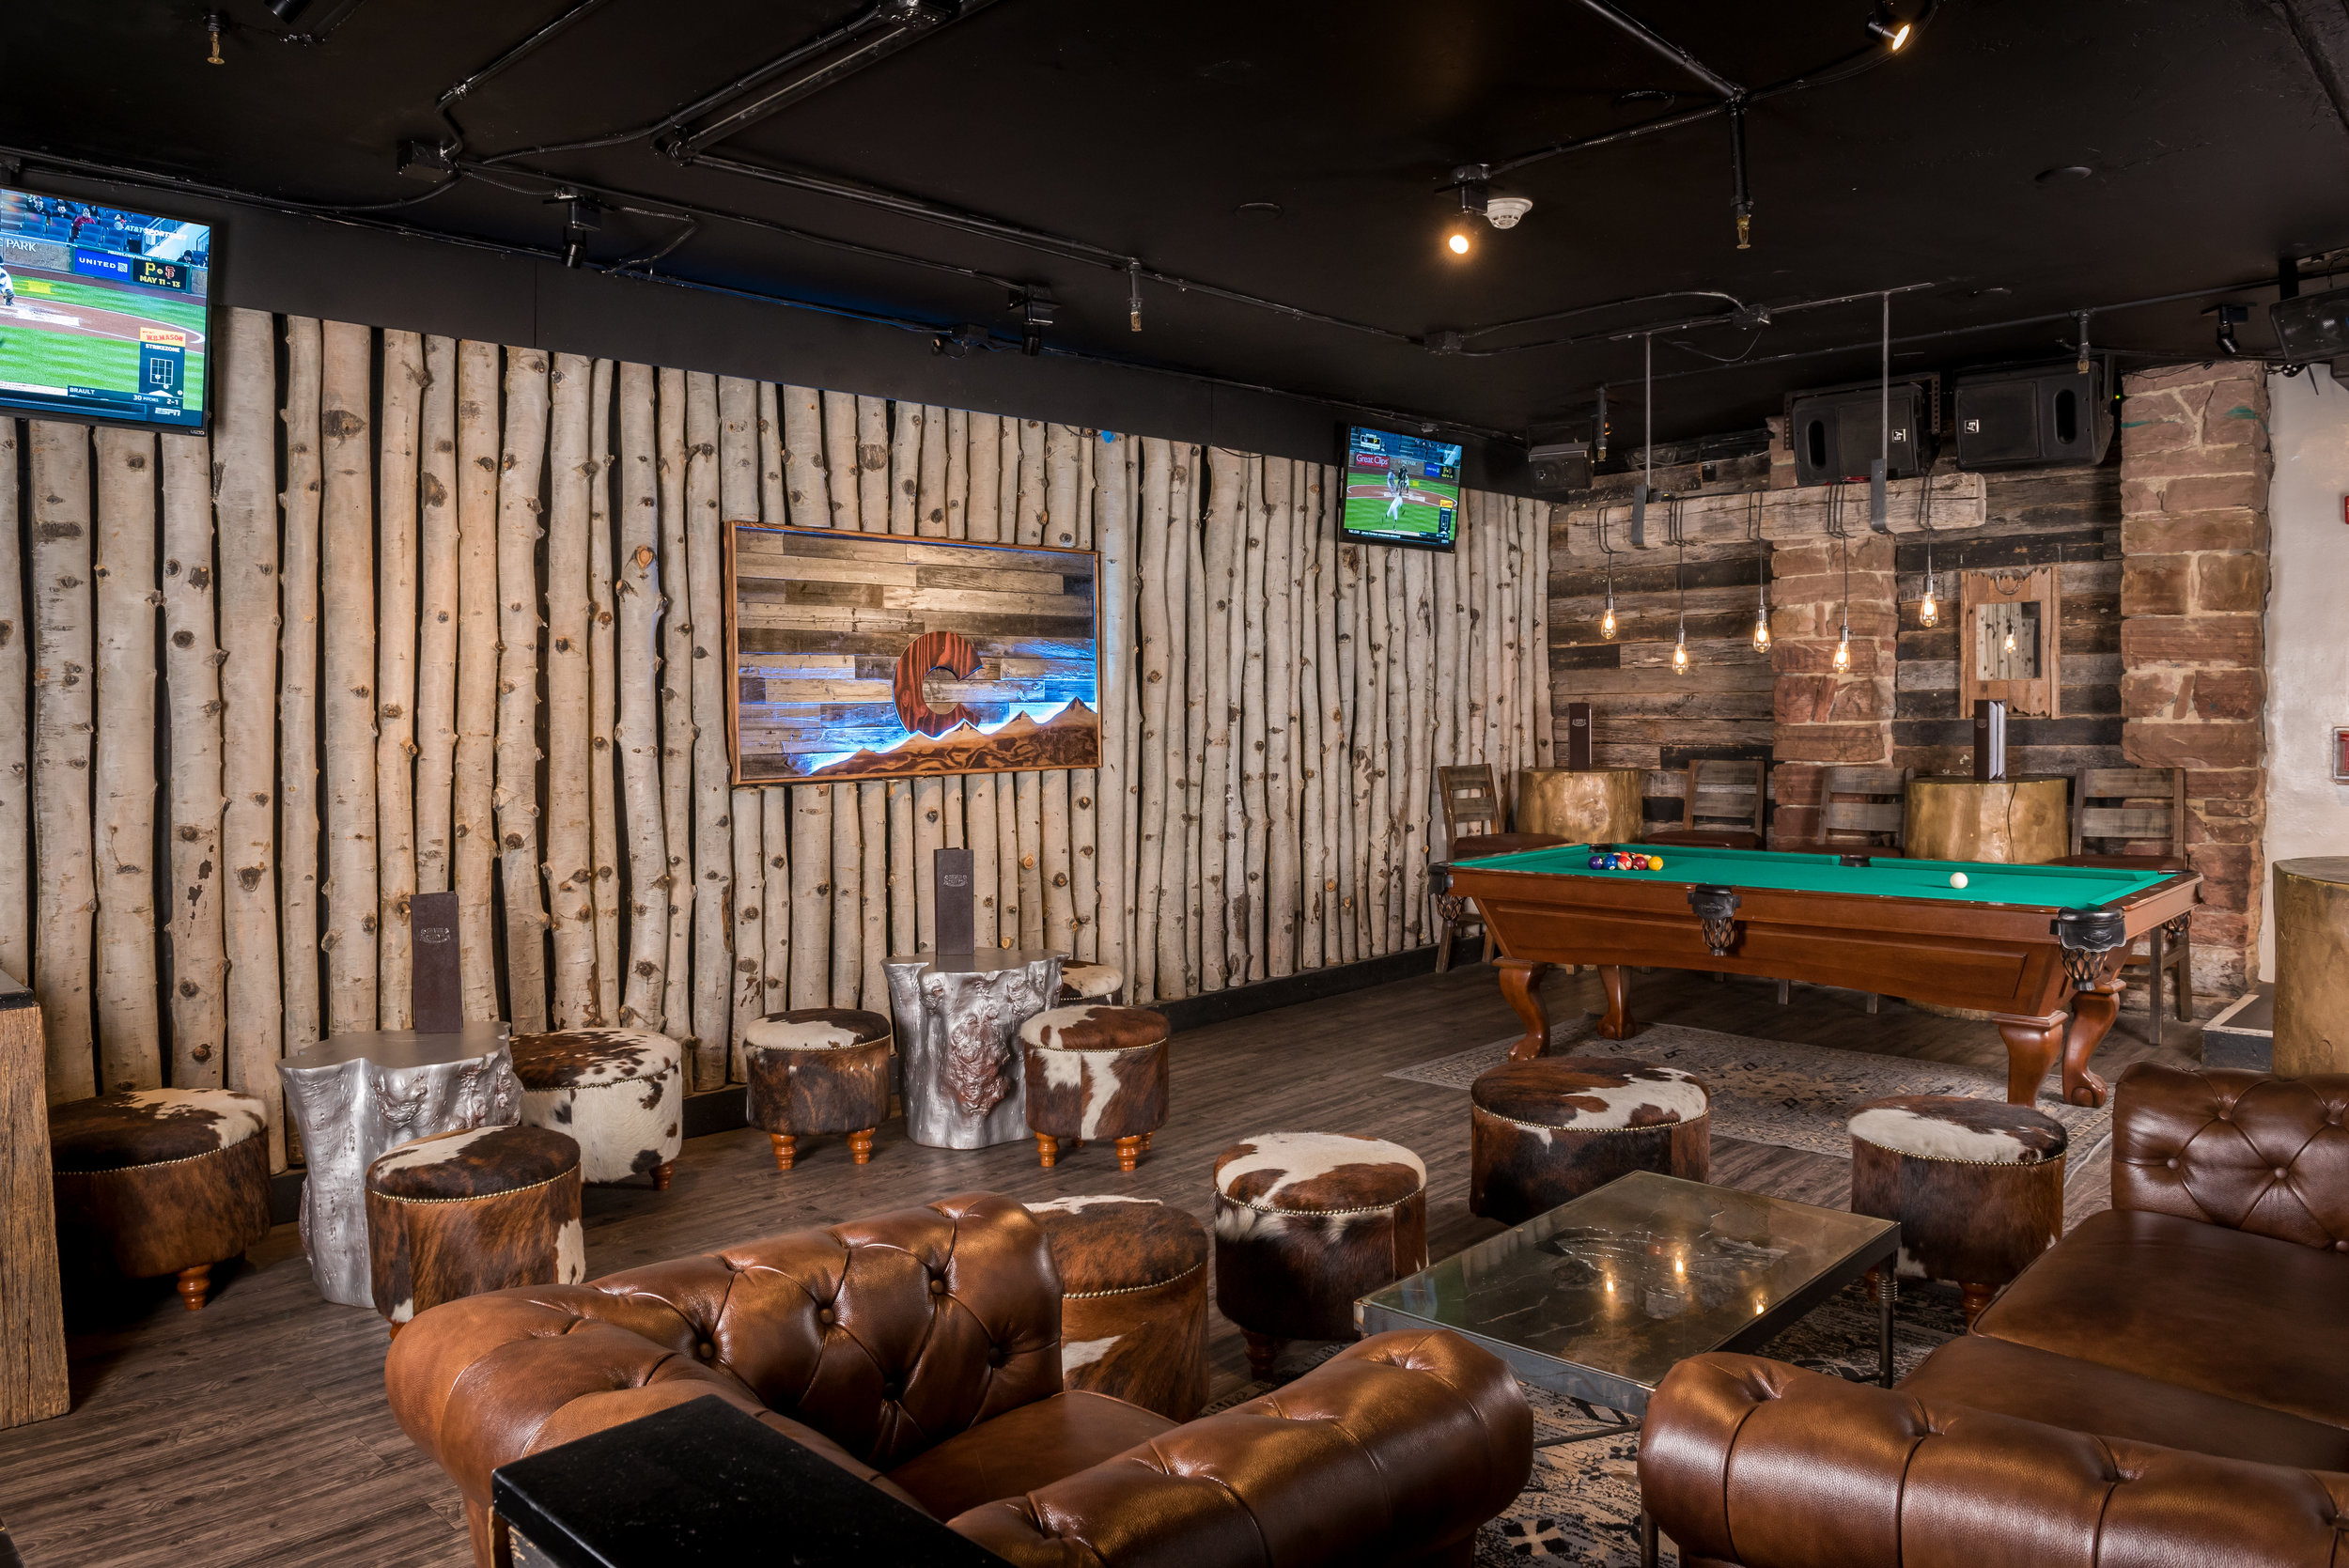 Bring your cue, Buckaroo. Aspen's hustlers know where the only free table in town is at...